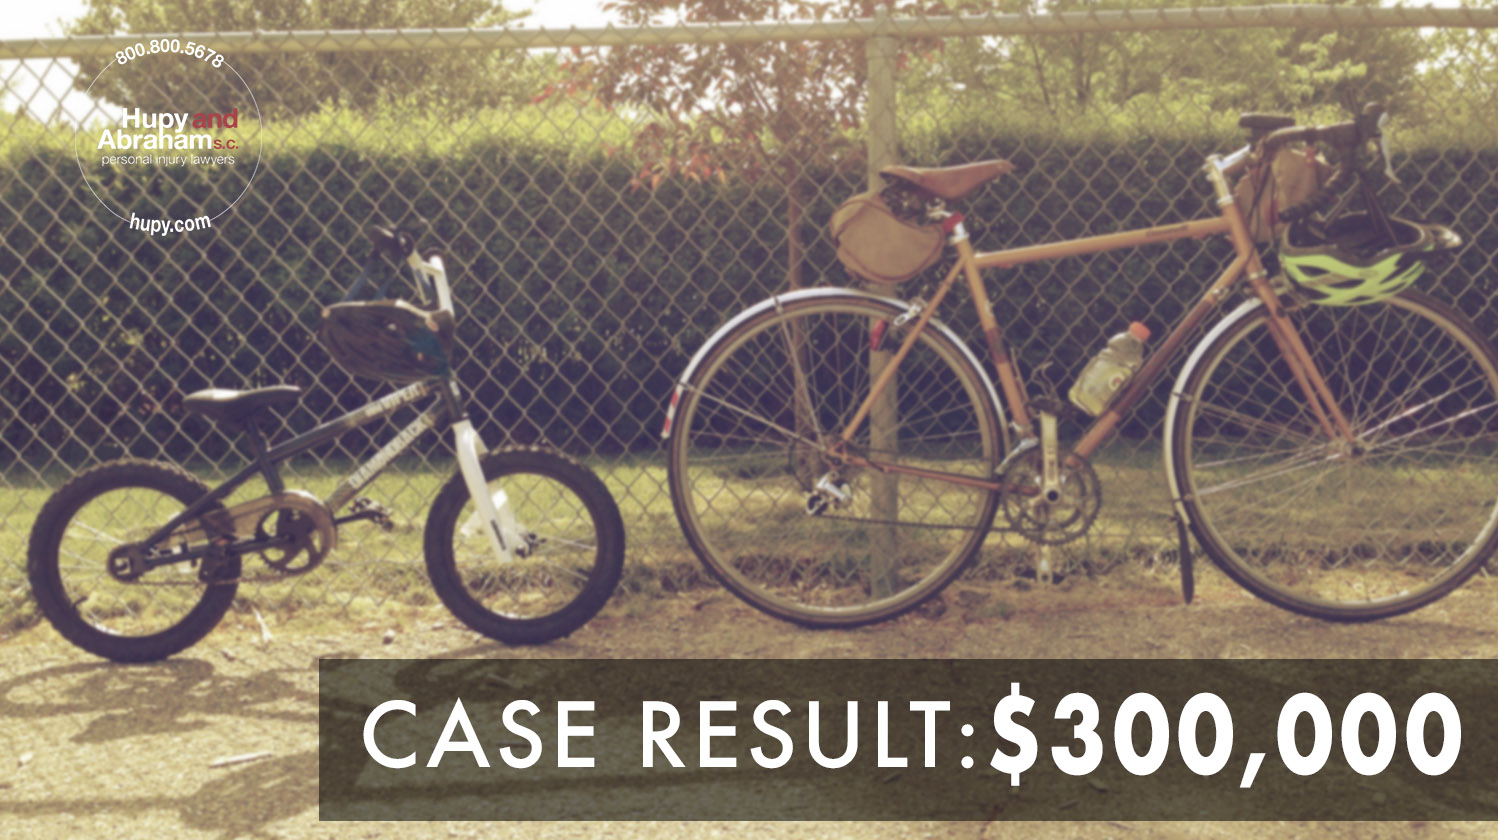 Two bicycles leaned up against a chain link fence